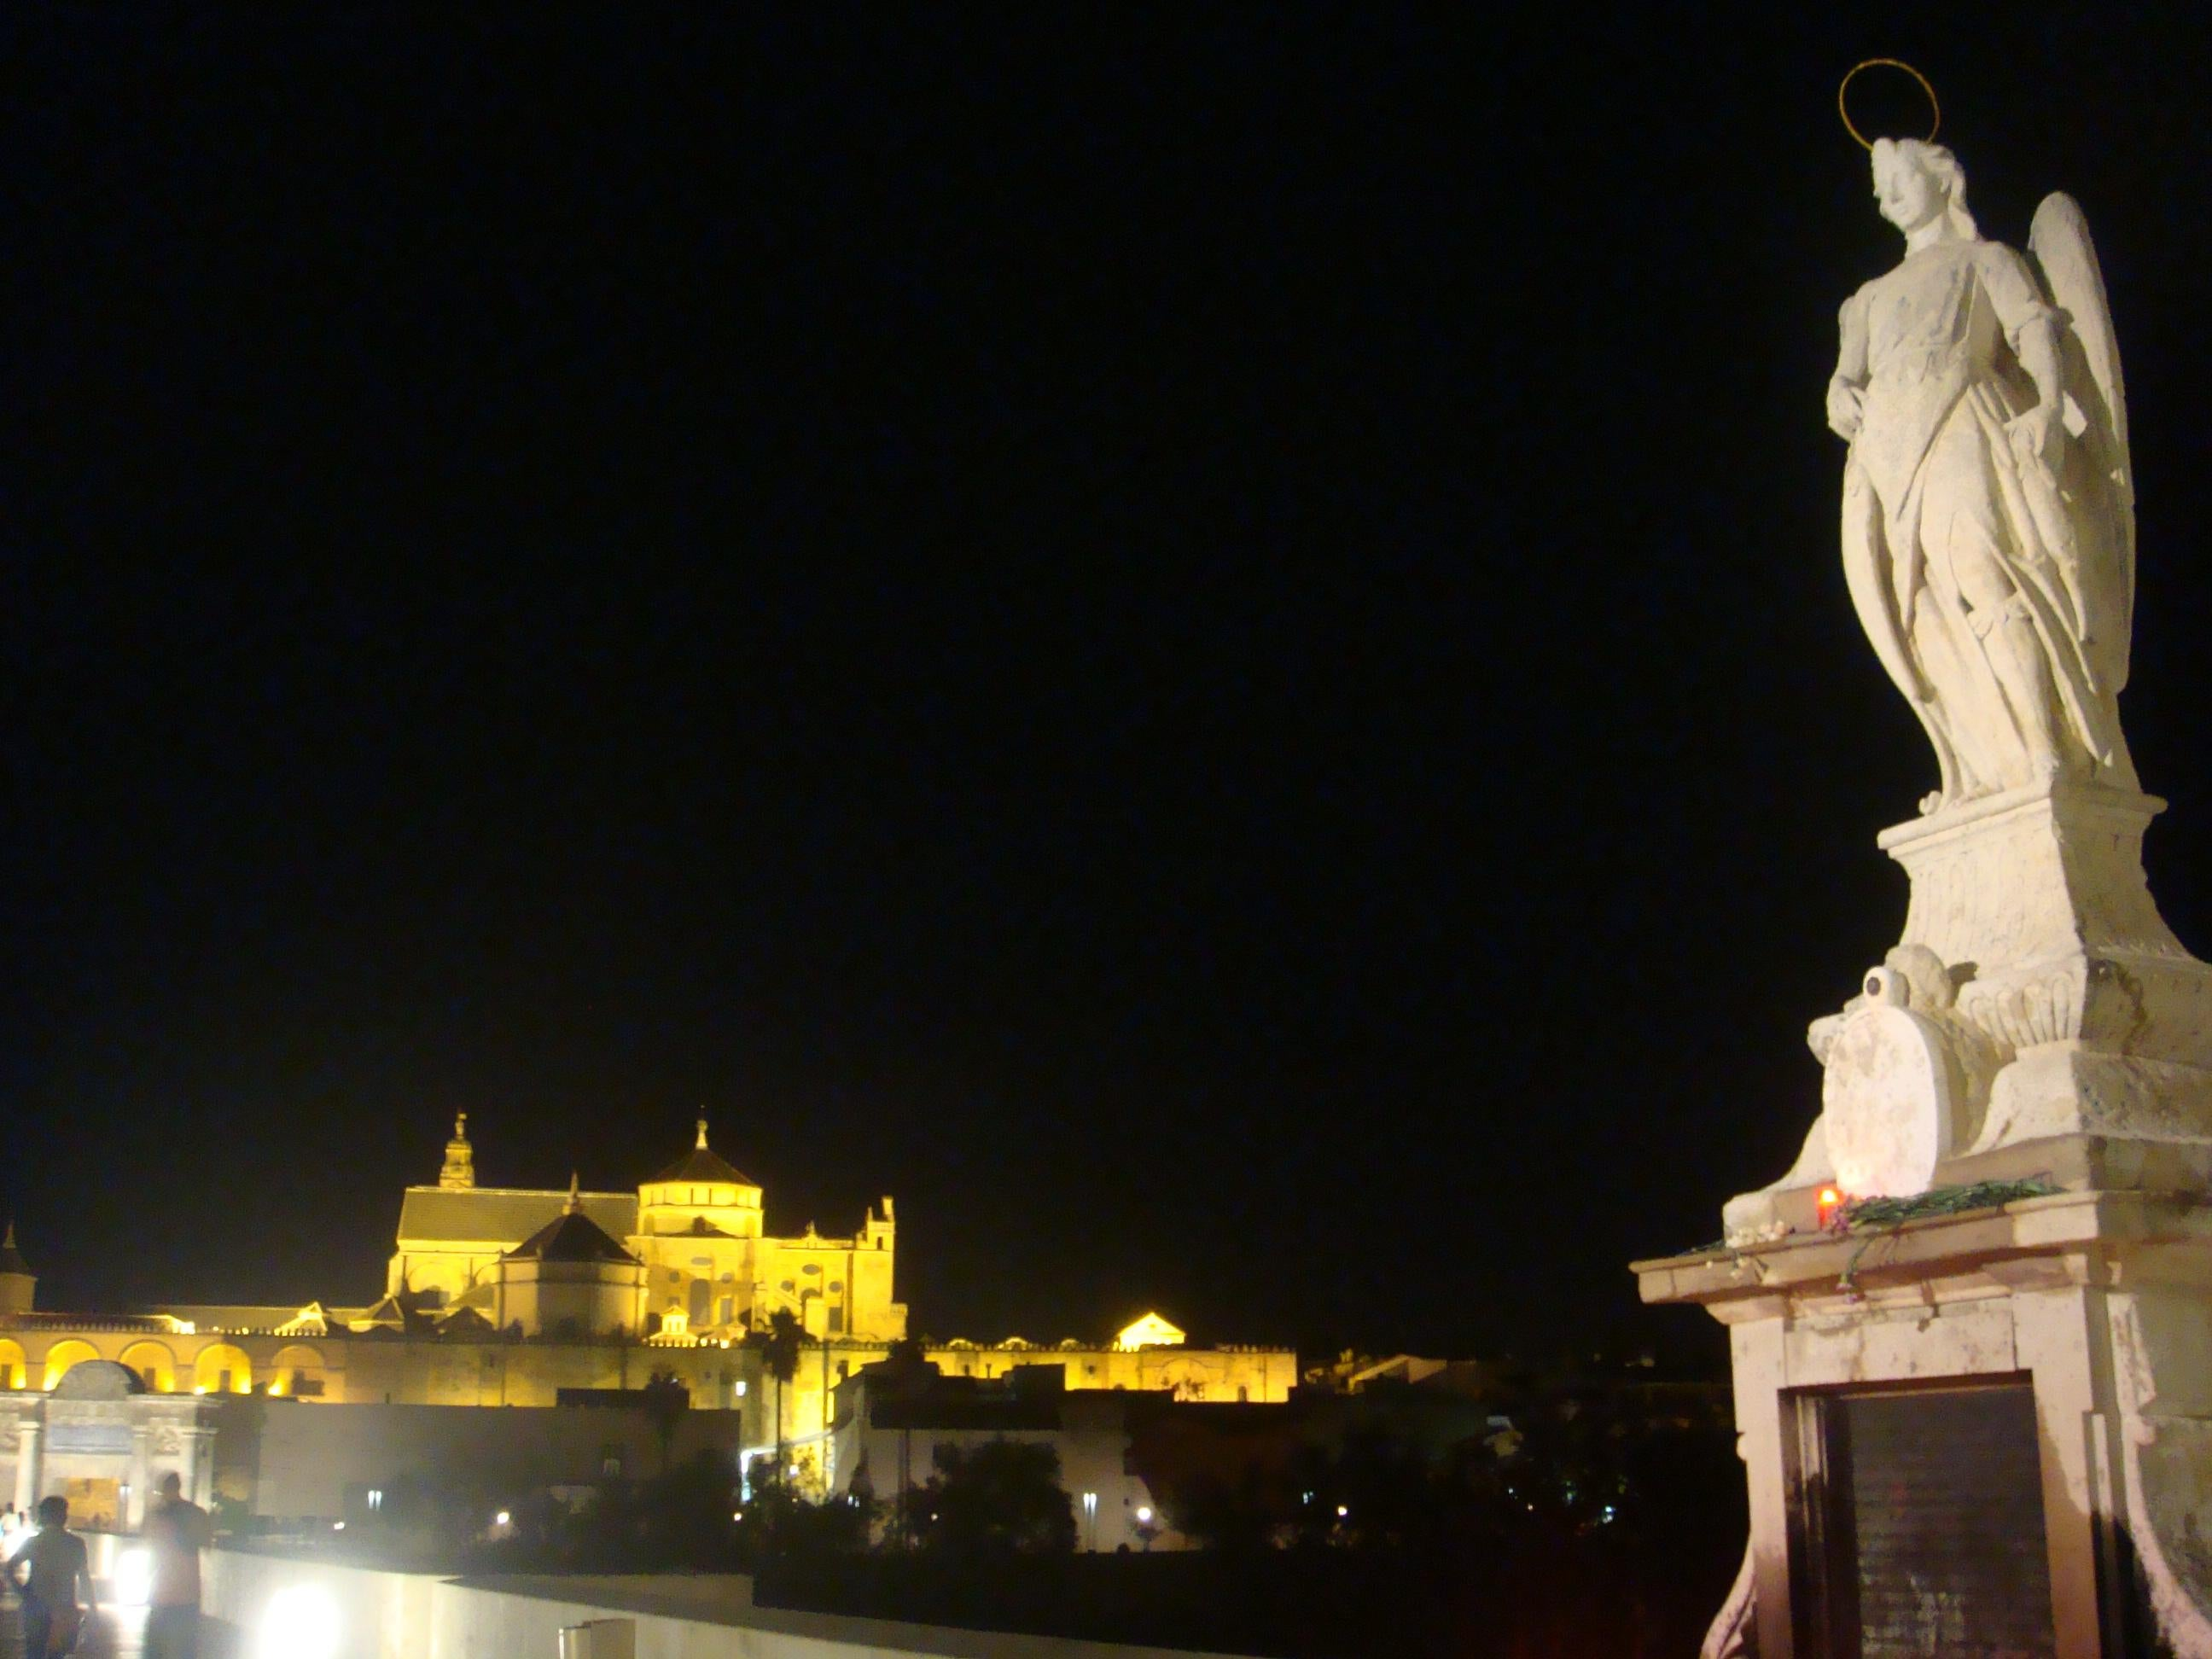 Night in Roman Bridge of Córdoba